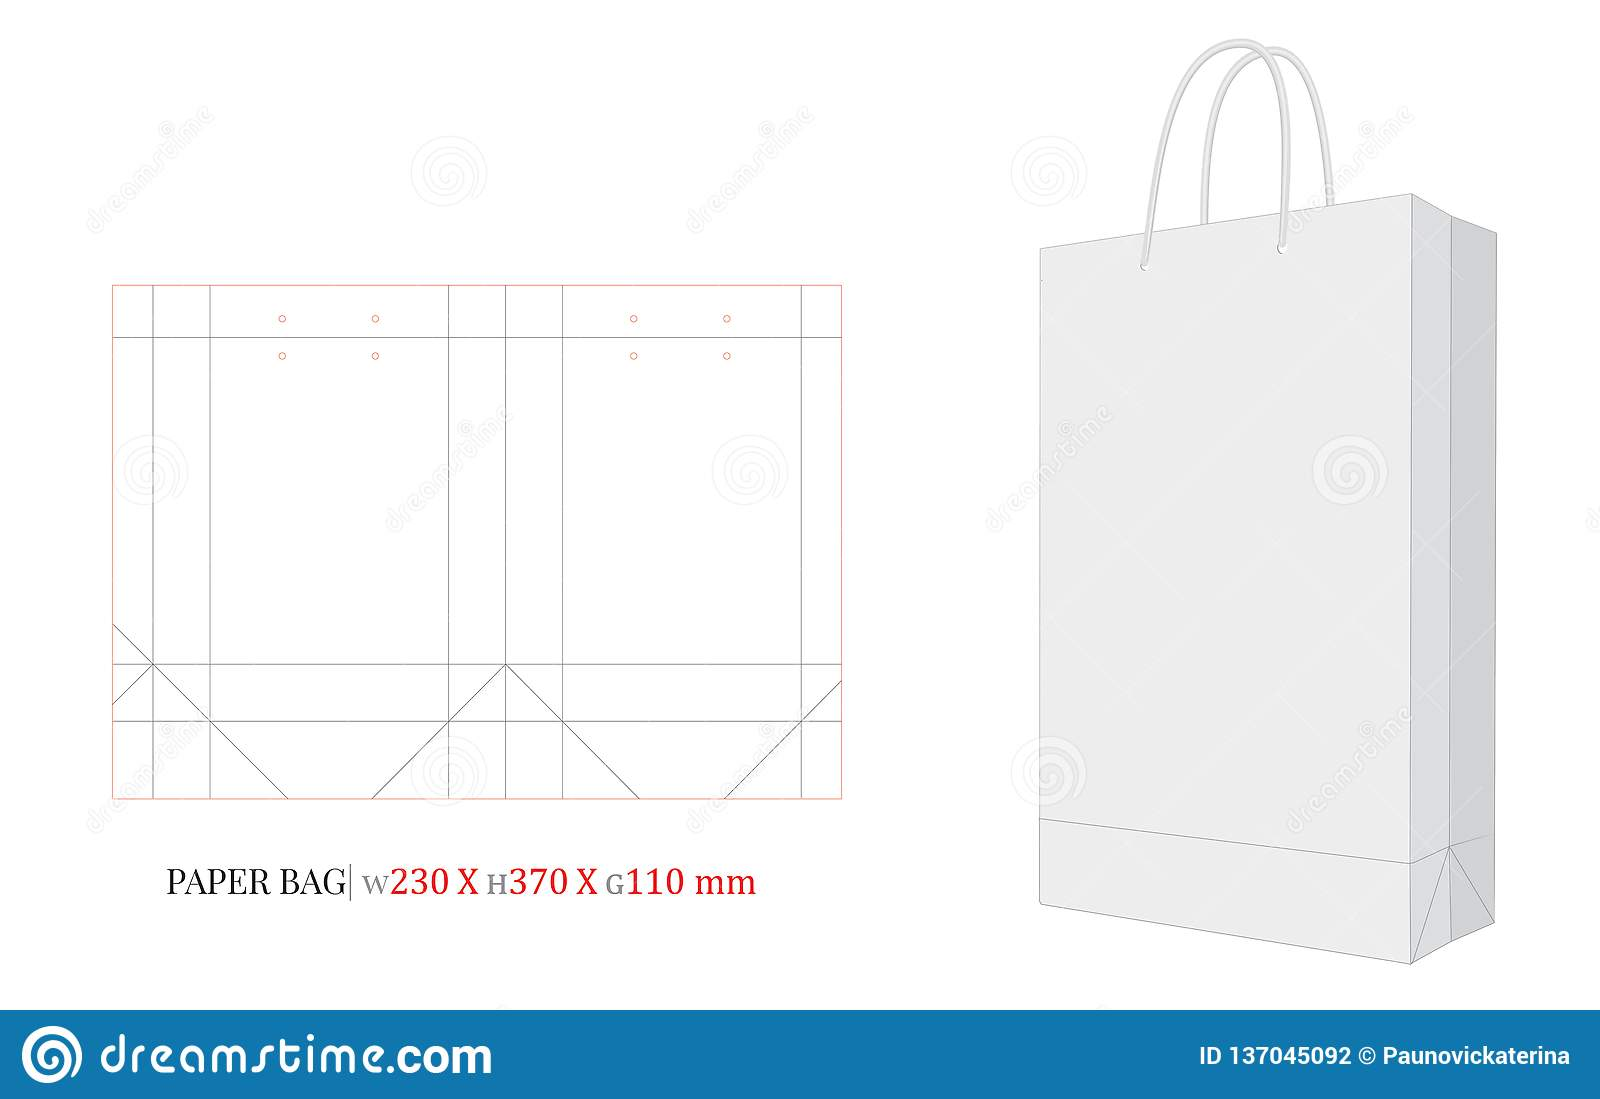 Layered psd through smart object insertion. Paper Bag Template With Die Cut Laser Cut Lines Shopping Bag Mock Up Vector 230 X 370 X 110 Stock Vector Illustration Of Shopping Clear 137045092